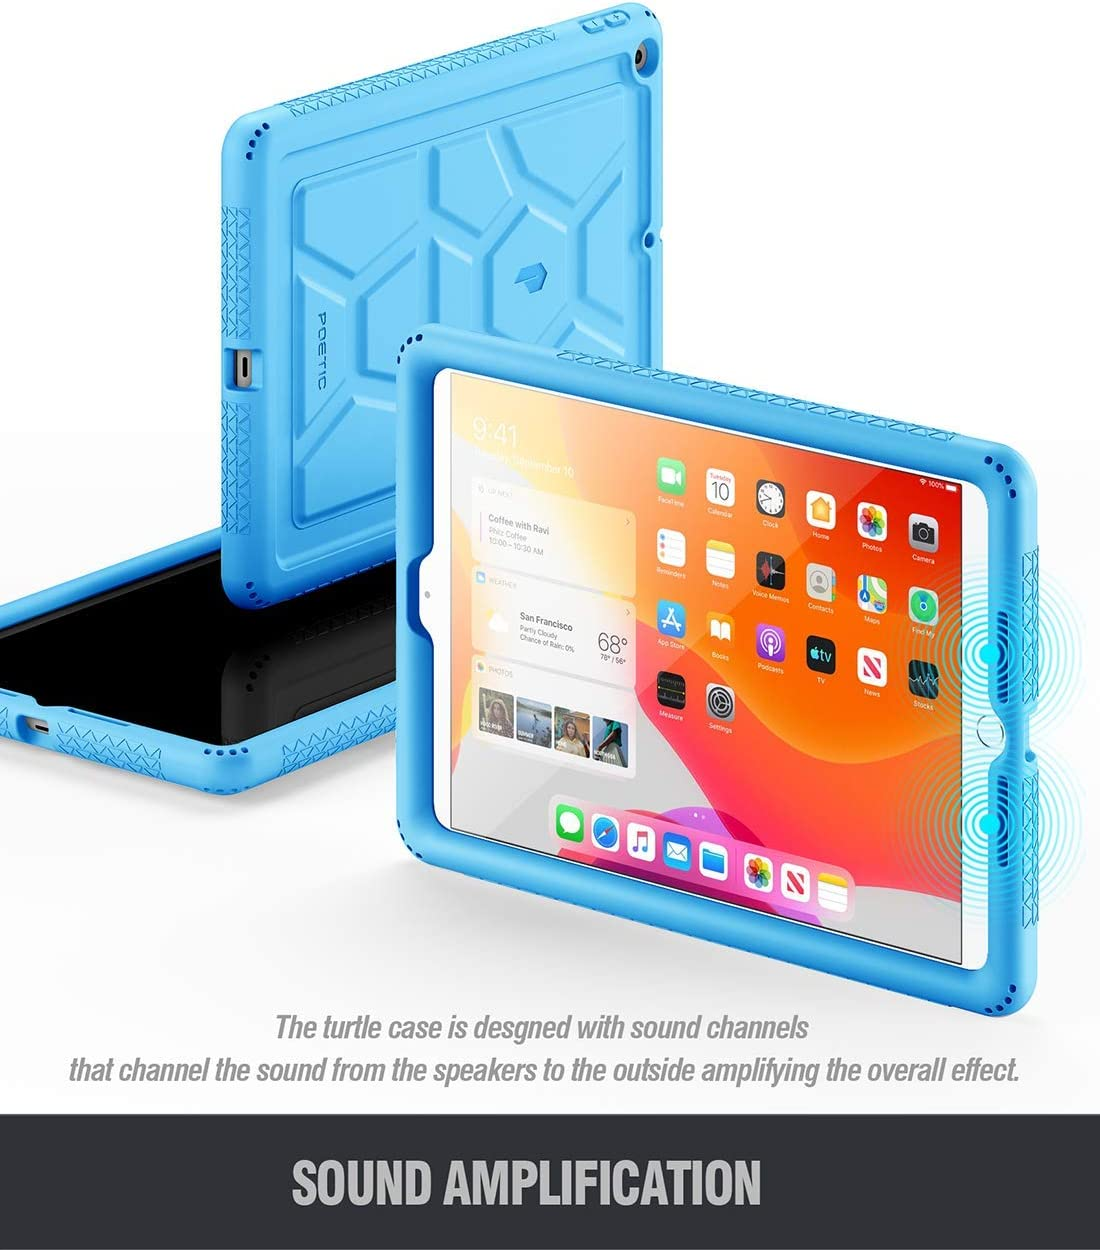 for Apple iPad 10.2 inch 7th Generation, 2019 Release Black iPad 10.2 2019 Tablet Case TurtleSkin Series Poetic Heavy Duty Shockproof Kids Friendly Silicone Case Cover